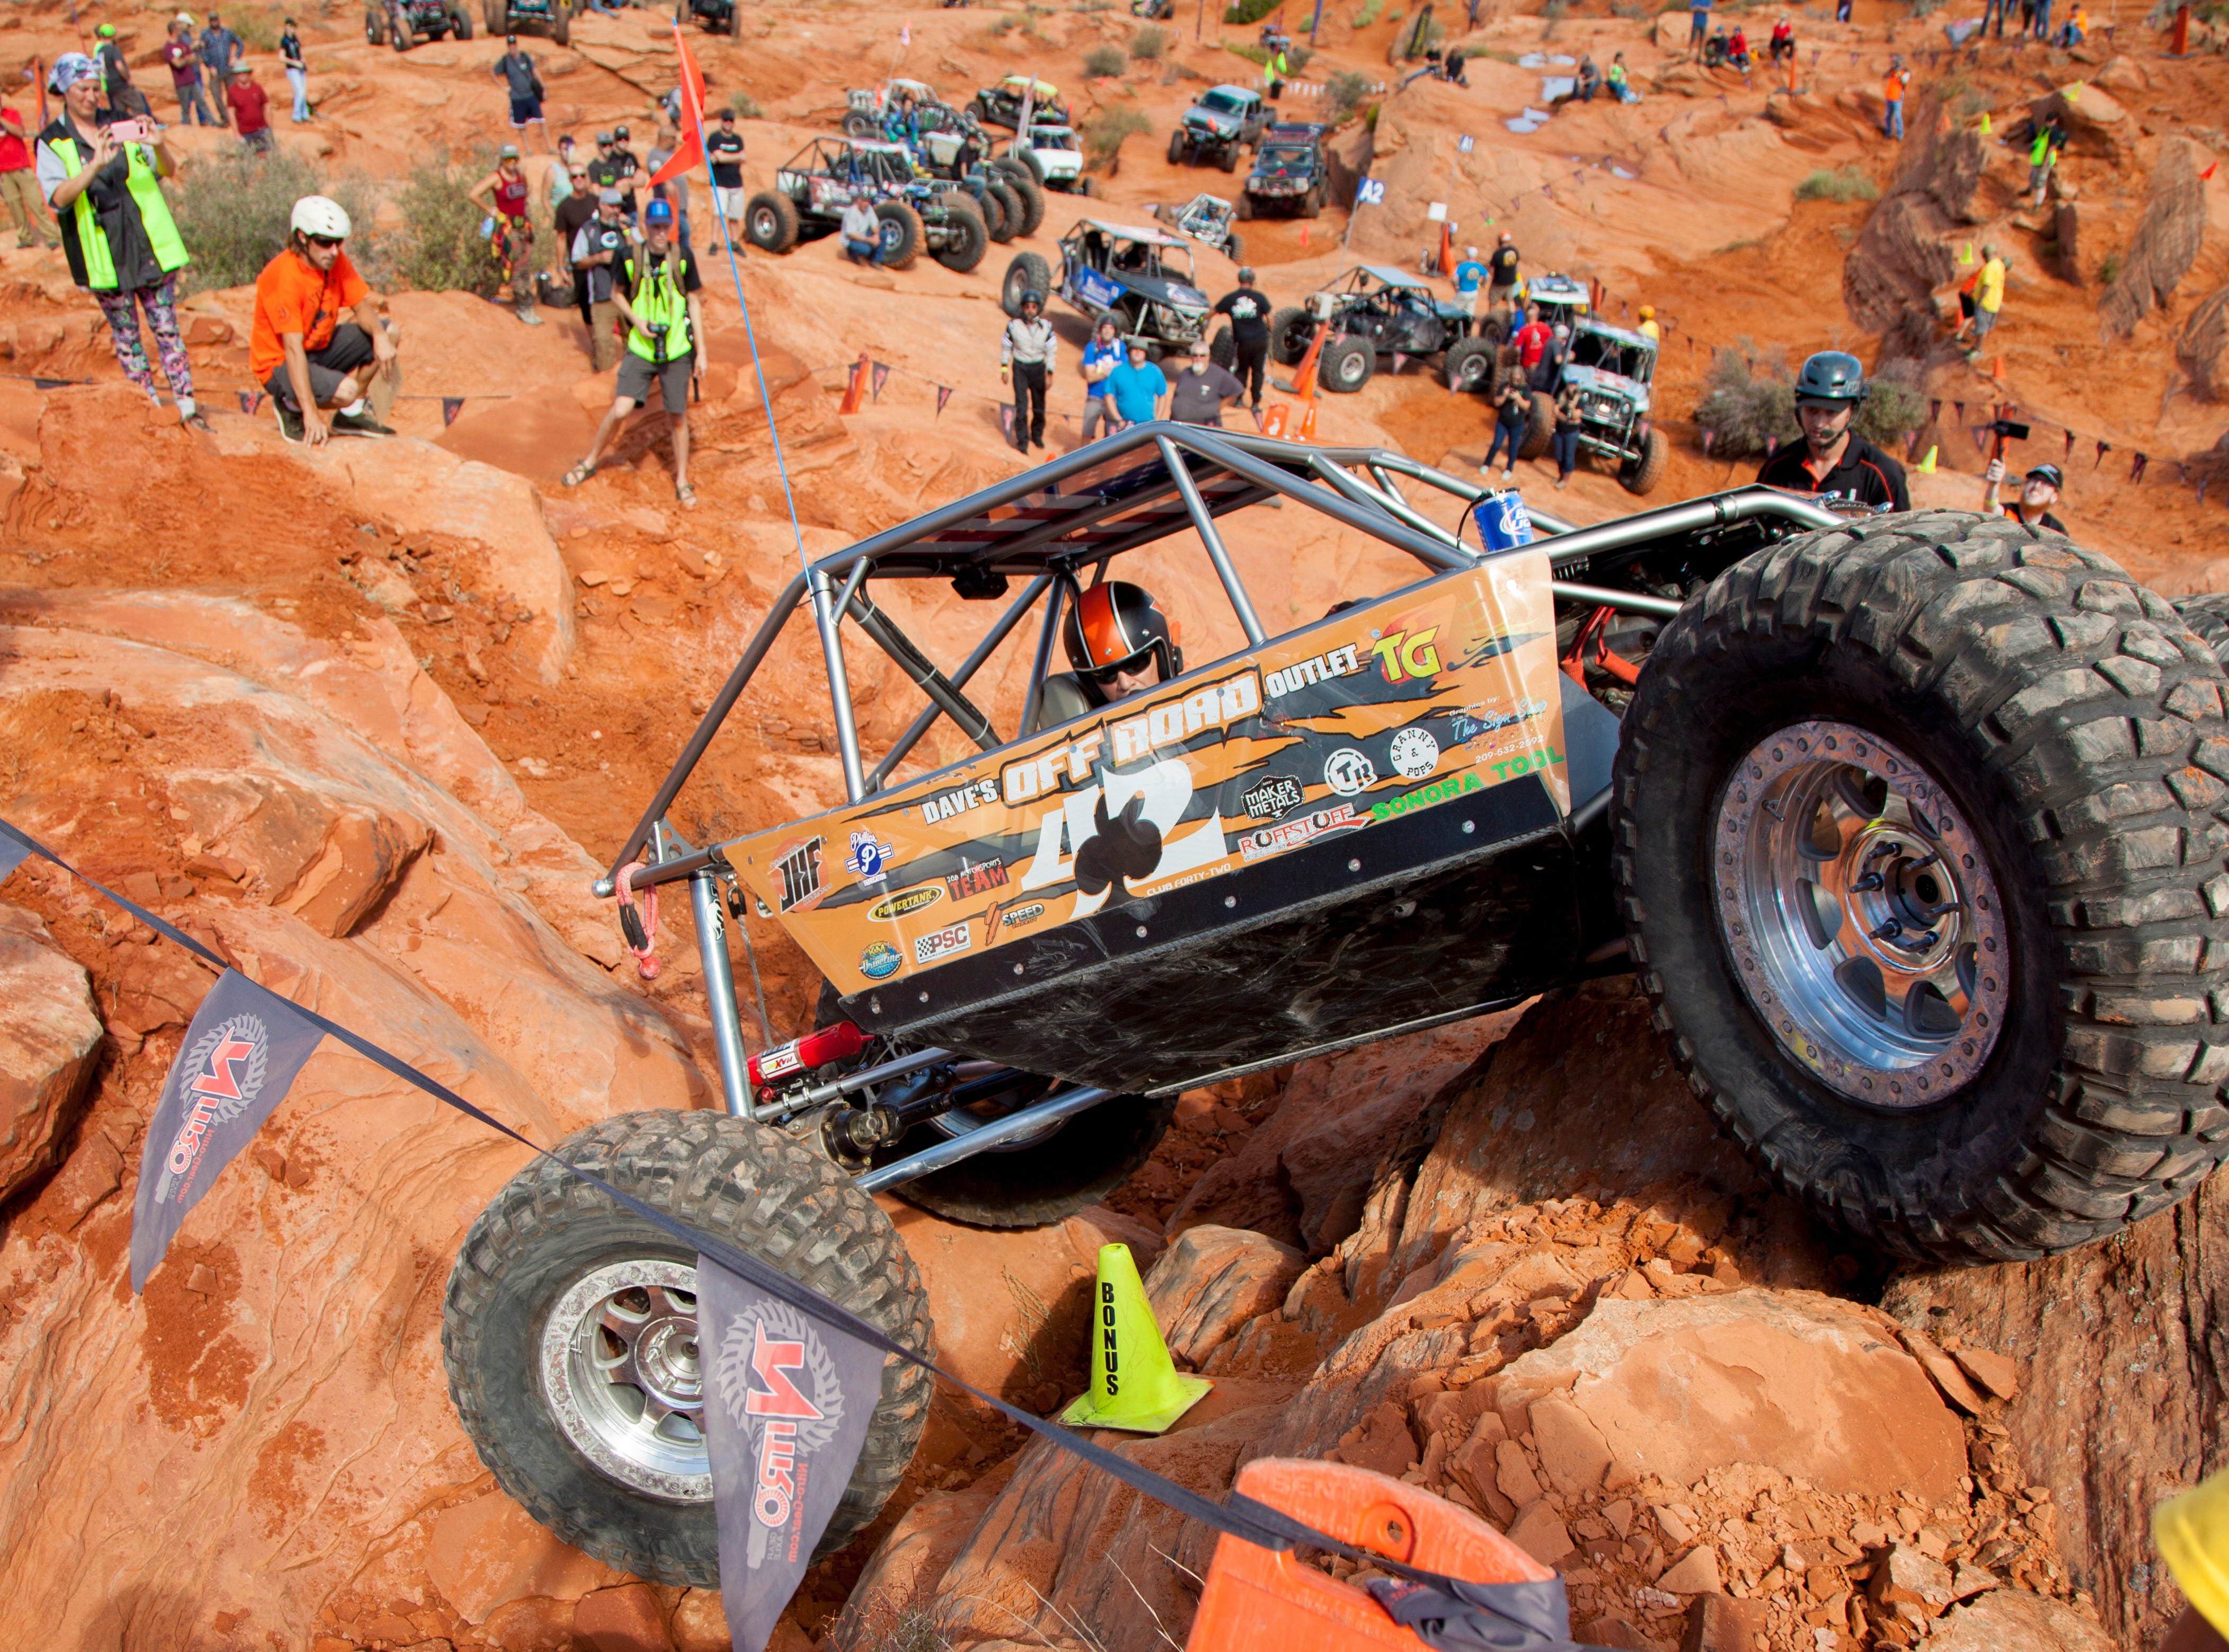 Drivers compete in the Trail Hero rock crawling event at Sand Hollow Thursday, Oct. 4, 2018.